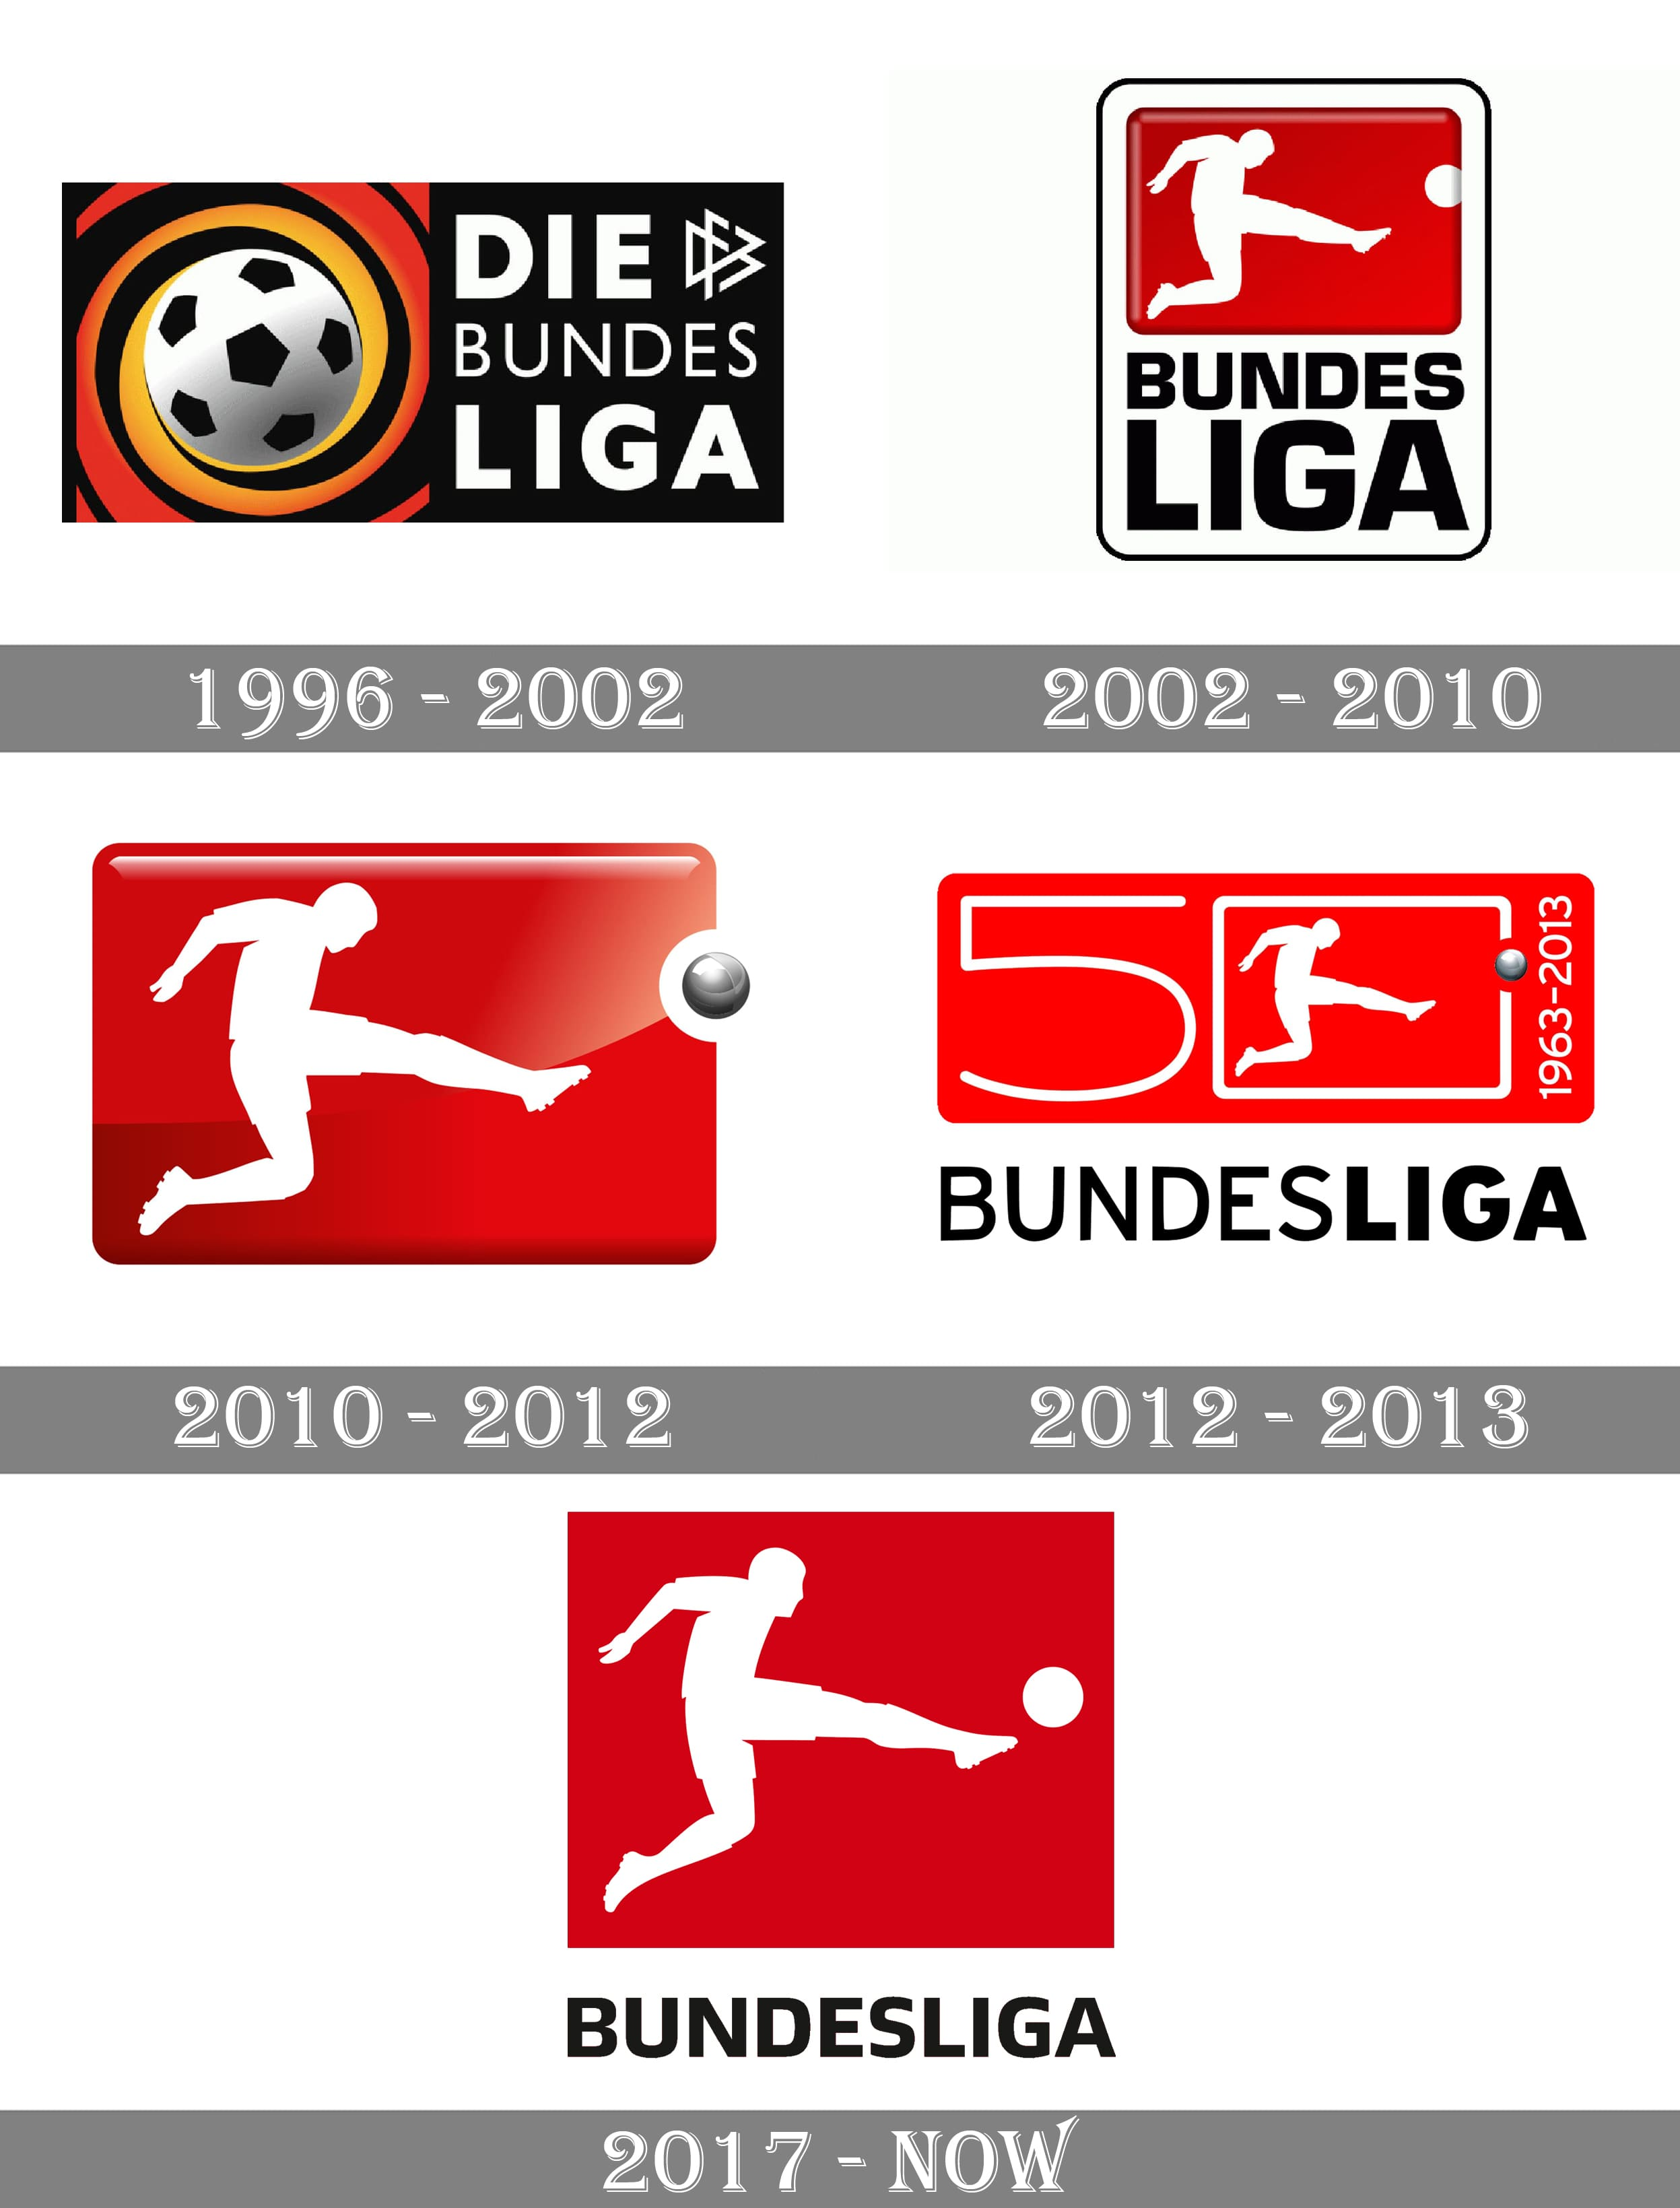 bundesliga logo and symbol meaning history png bundesliga logo and symbol meaning